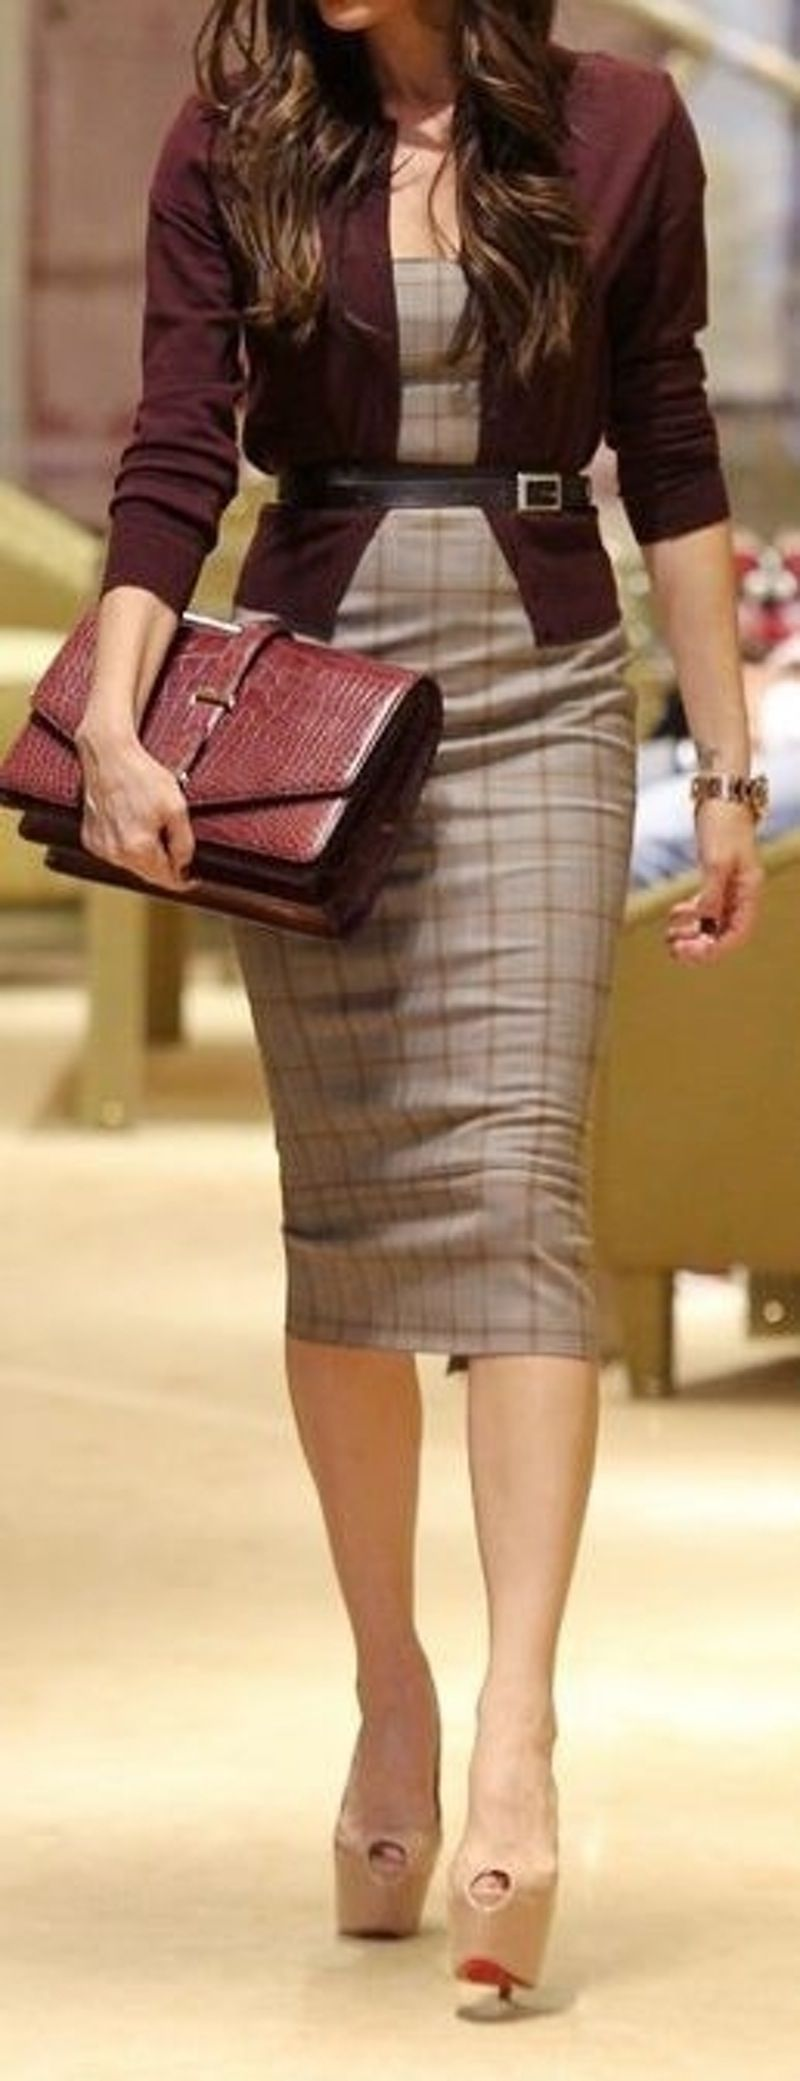 2. Belted Dress - 44 Professional and Sophisticated Office Outfits You Will Love